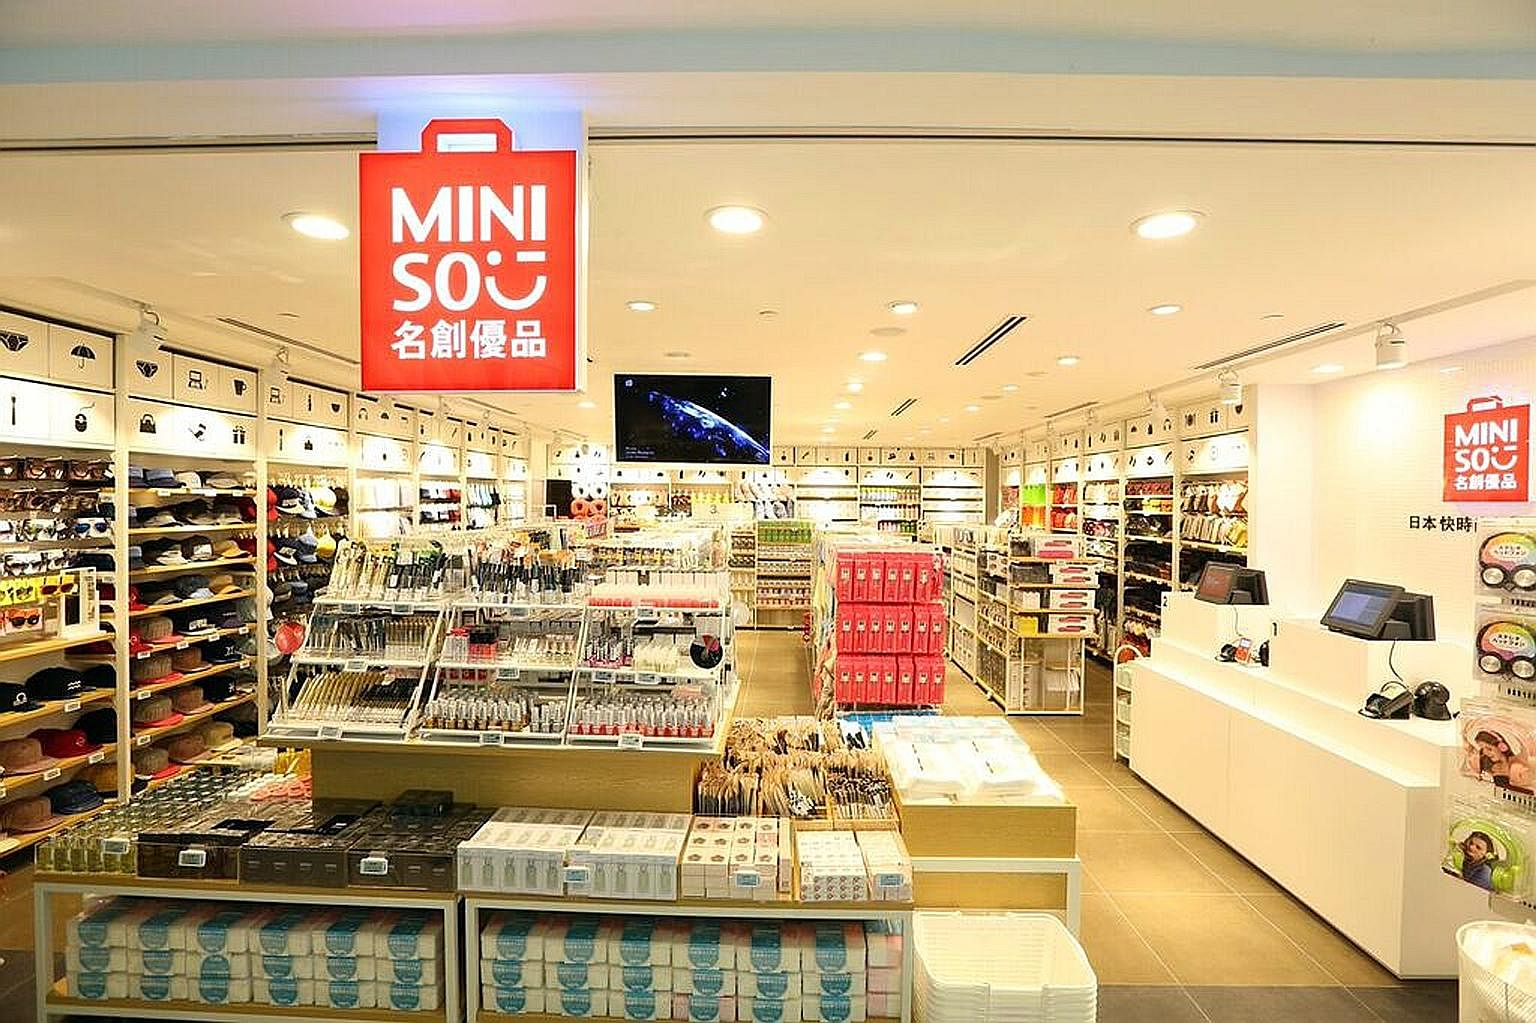 Thanks to a franchise model, Miniso is expanding swiftly too, with more than 3,500 outlets in about 80 countries and regions, adding more at a rate of 80 to 100 shops every month. Volume is important, given low margins, and the group targets 10,000 s